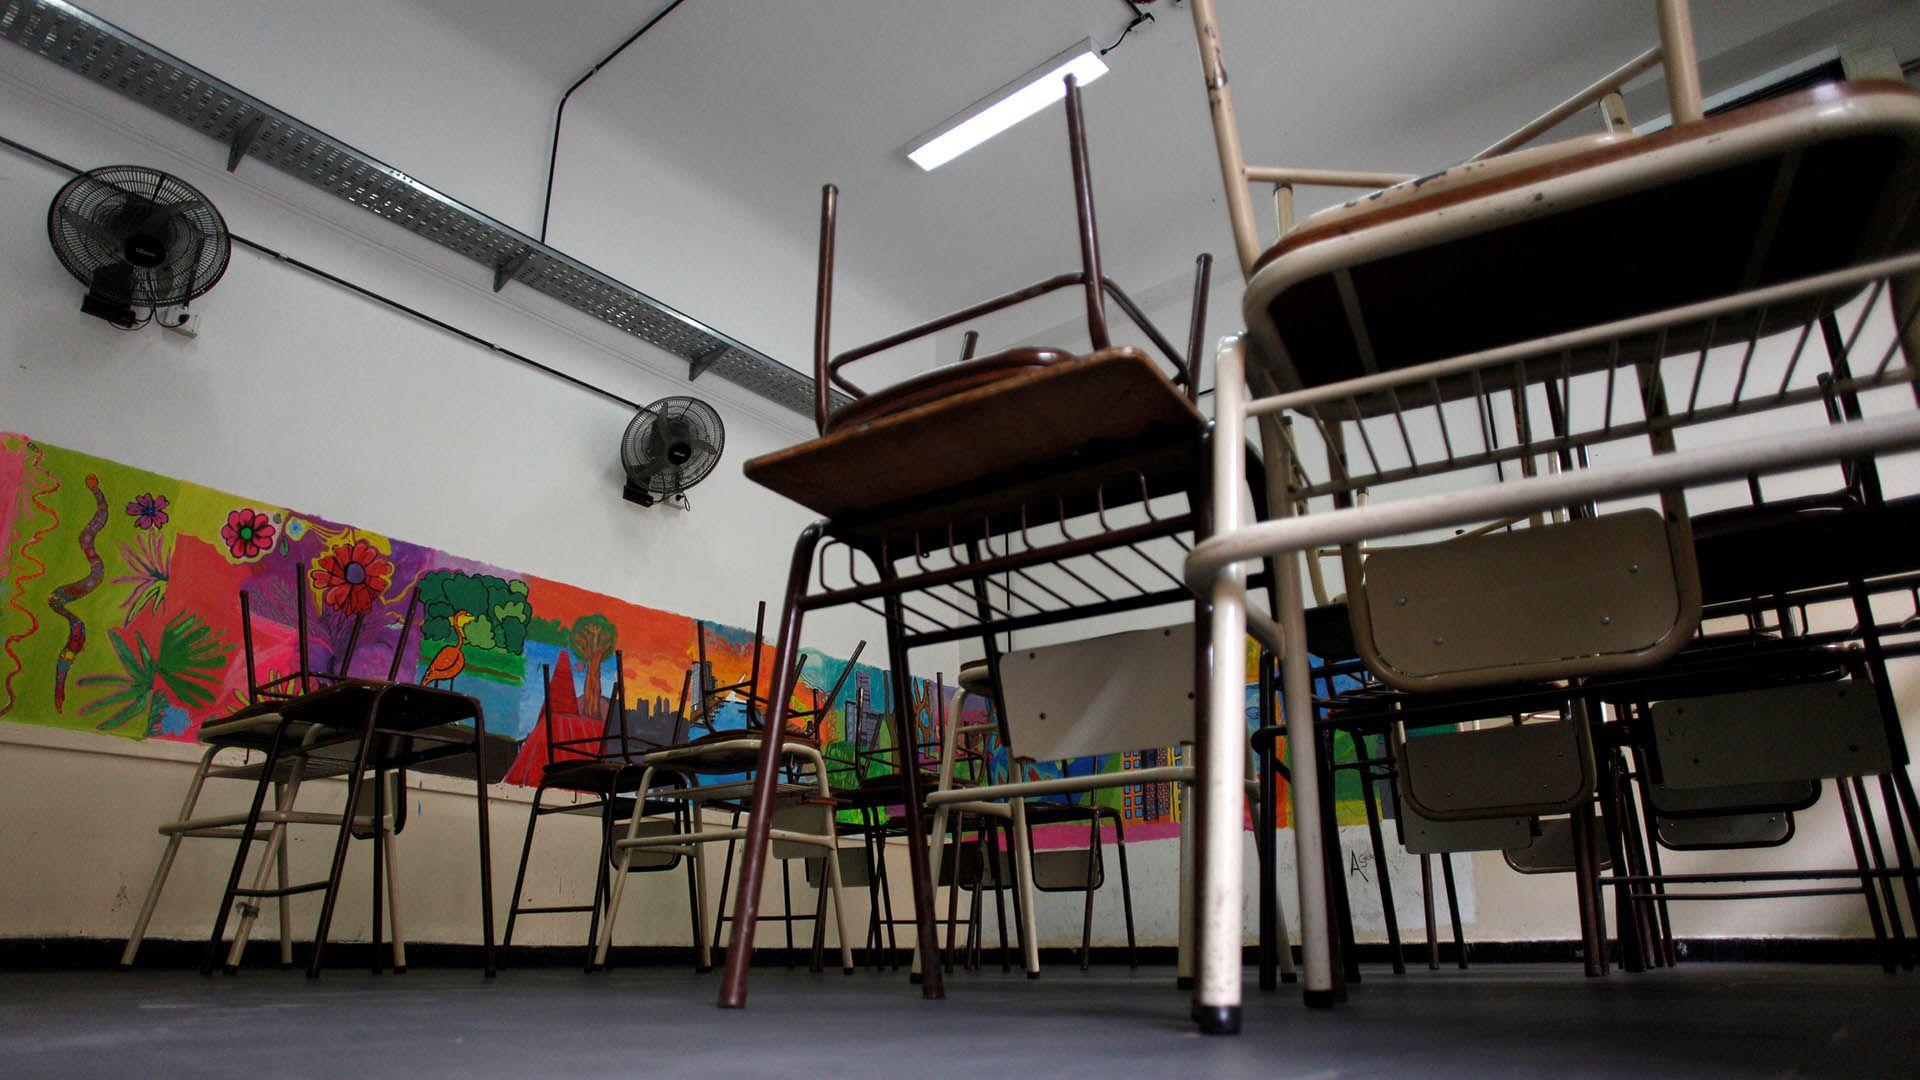 An empty classroom is seen at a public school during a national strike to demand better salaries in Buenos Aires, Argentina, July 3, 2018. REUTERS/Martin Acosta